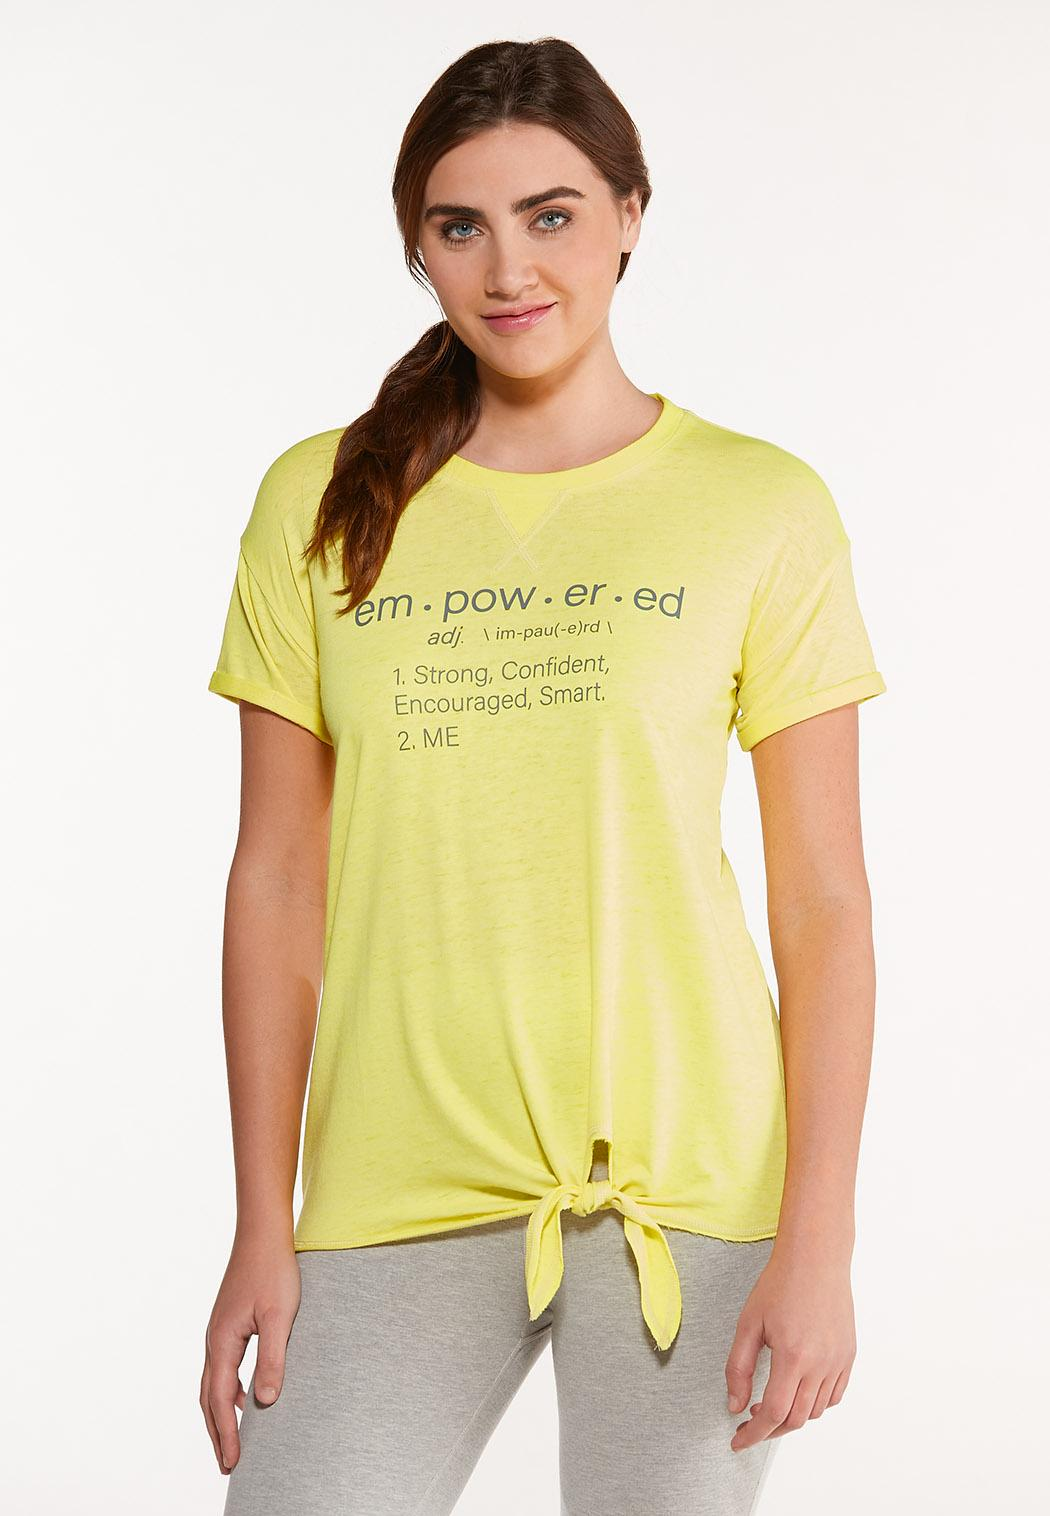 Empowered Knotted Tee